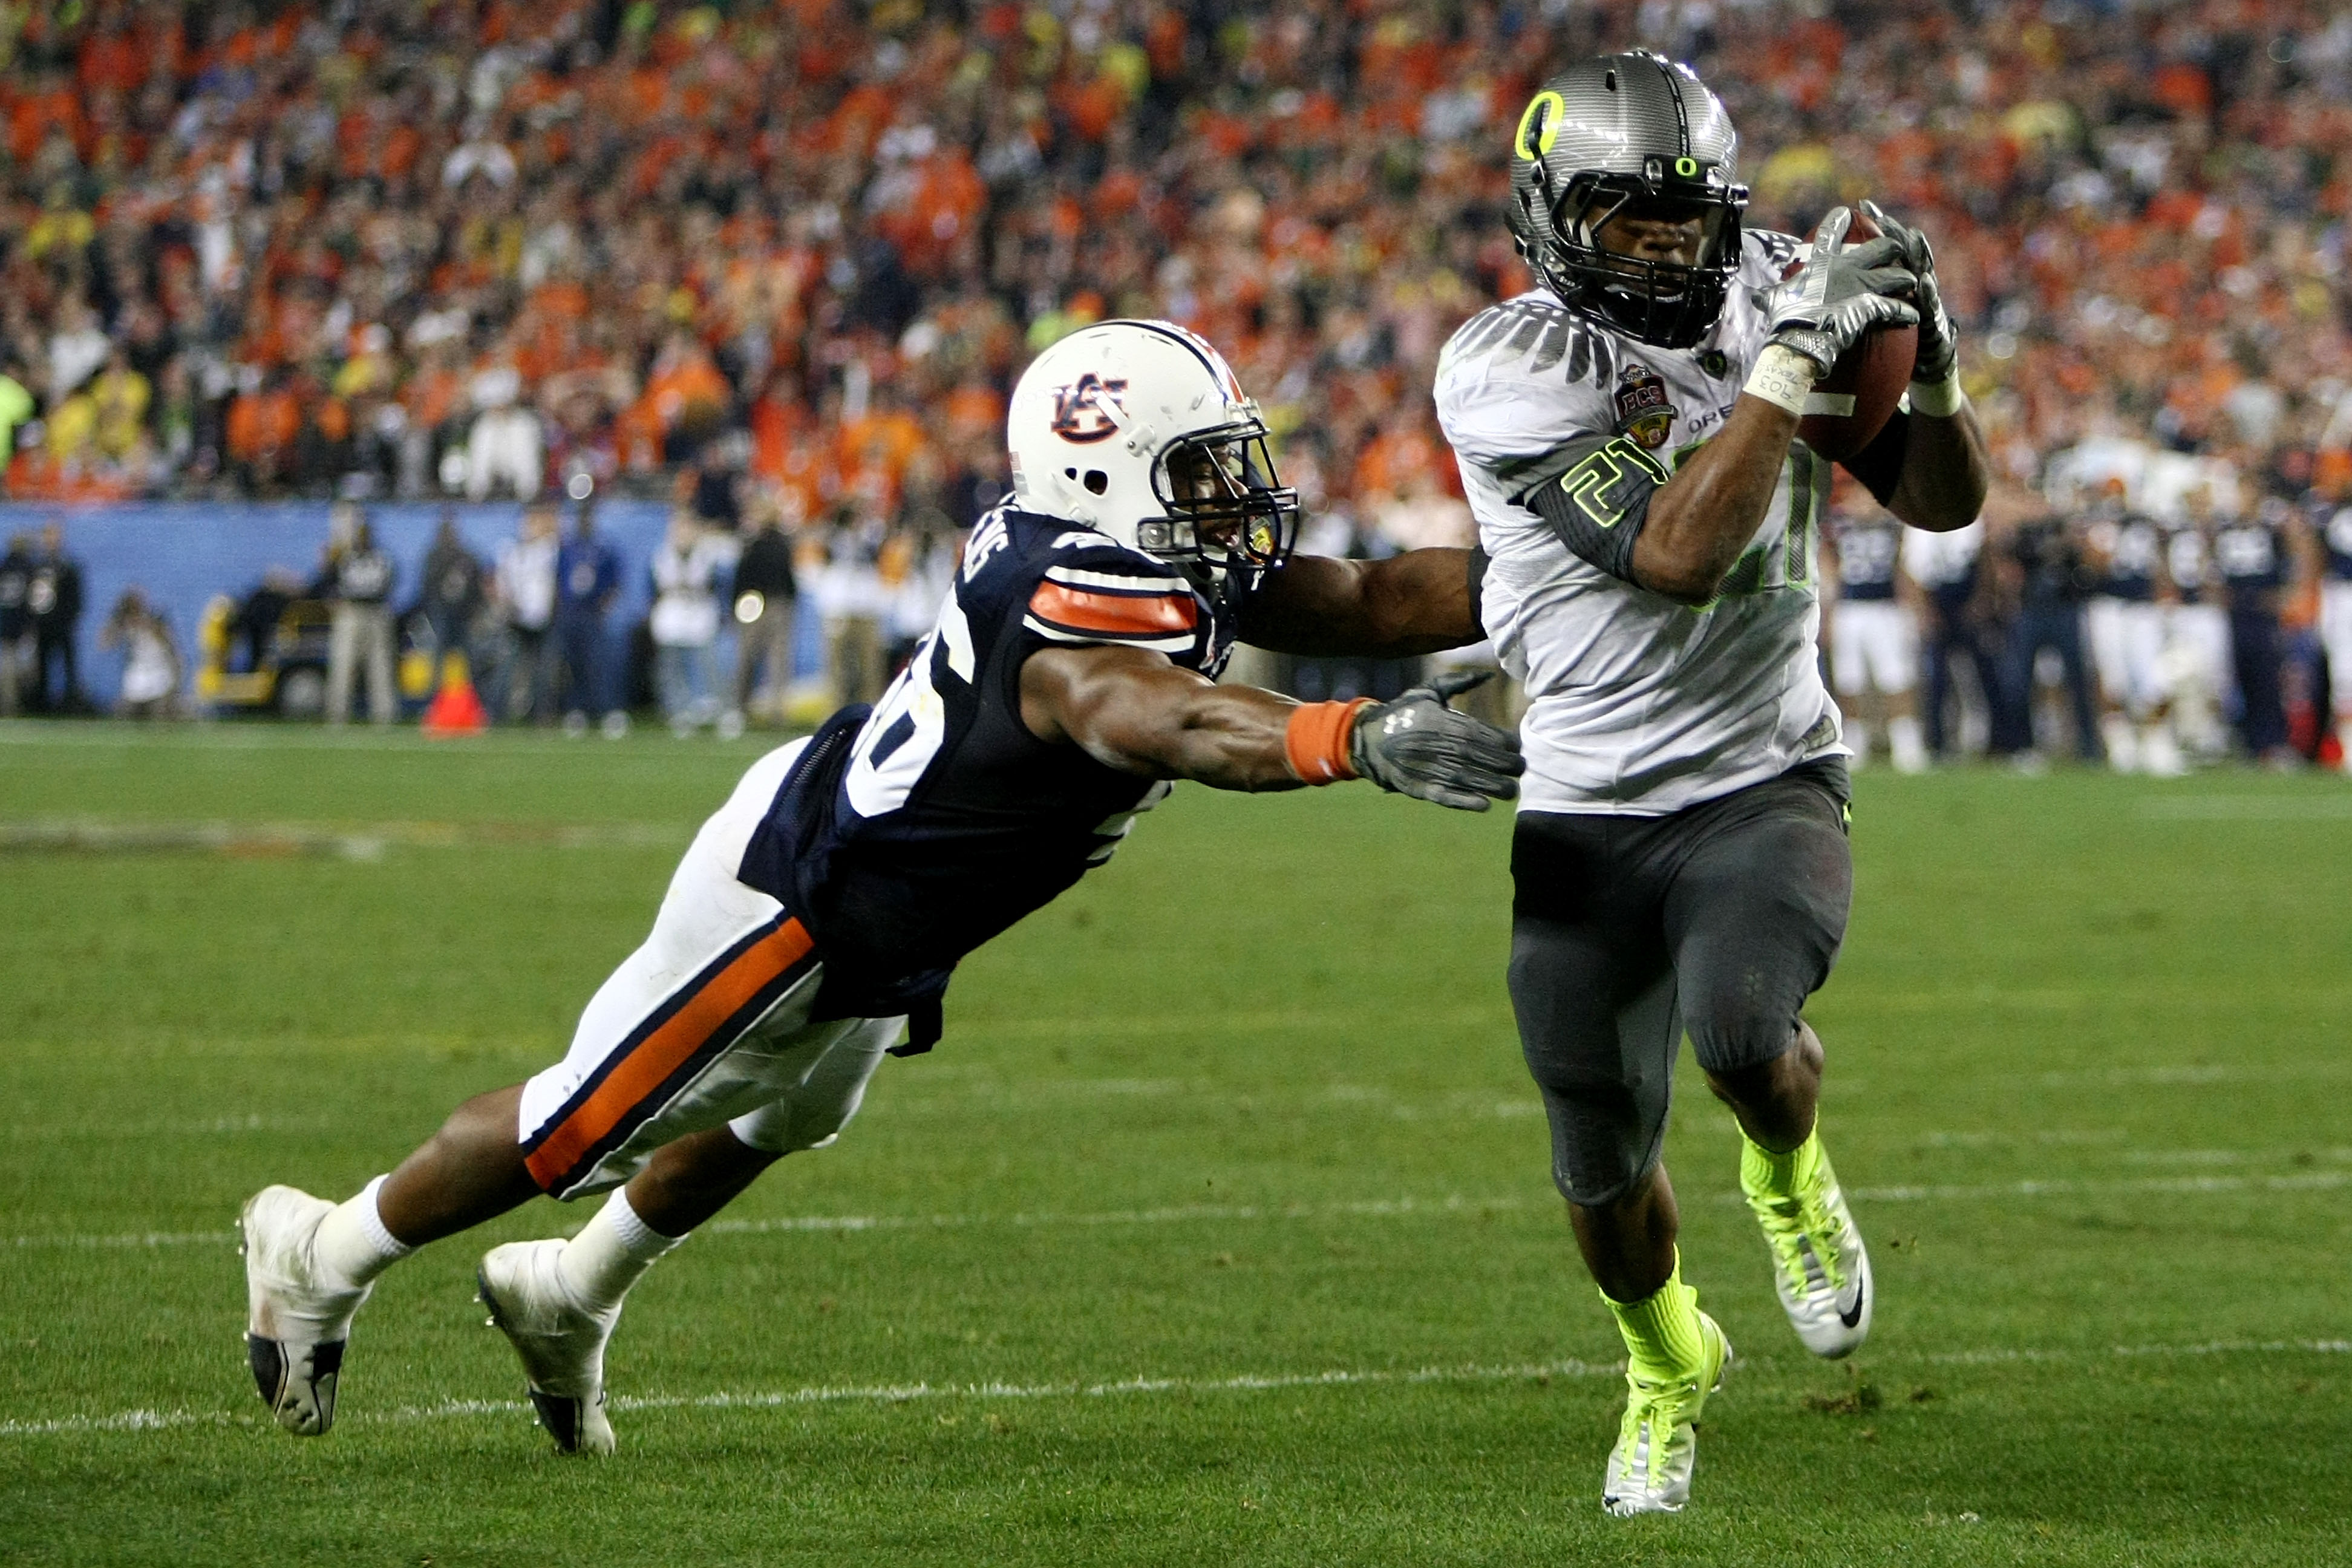 GLENDALE, AZ - JANUARY 10:  Running back LaMichael James #21 of the Oregon Ducks scores a touchdown on a two-yard touchdown reception in front of Craig Stevens #46 of the Auburn Tigers in the fourth quarter during the Tostitos BCS National Championship Ga